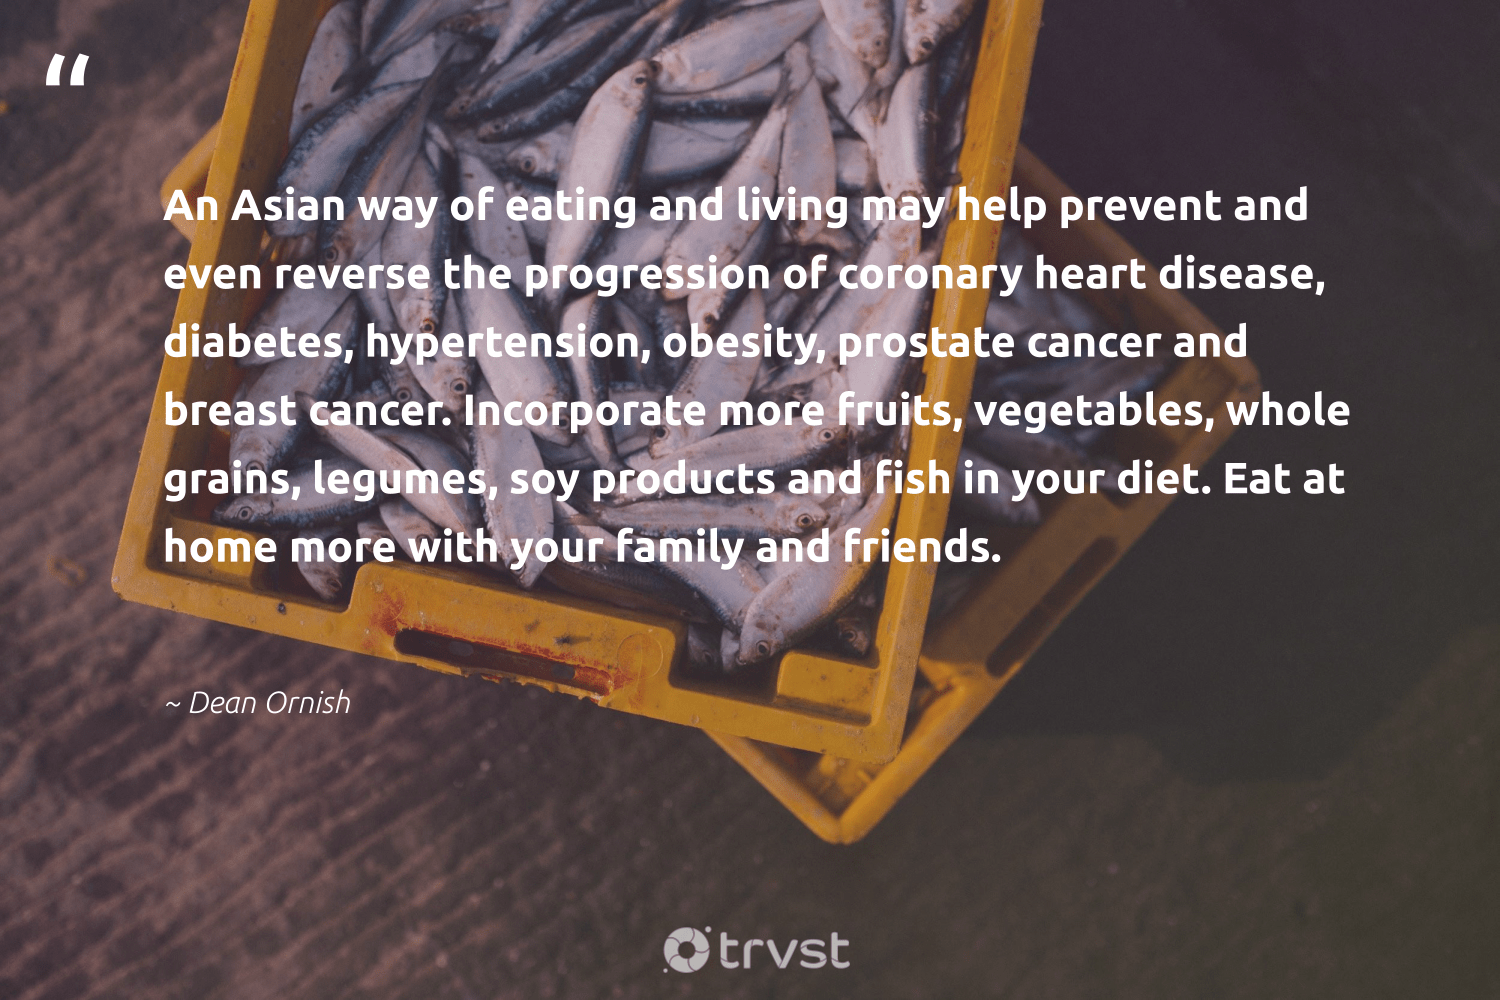 """""""An Asian way of eating and living may help prevent and even reverse the progression of coronary heart disease, diabetes, hypertension, obesity, prostate cancer and breast cancer. Incorporate more fruits, vegetables, whole grains, legumes, soy products and fish in your diet. Eat at home more with your family and friends.""""  - Dean Ornish #trvst #quotes #fish #family #conservation #ecoconscious #perfectnature #dotherightthing #oceanconservation #planetearthfirst #wildlifeprotection #bethechange"""